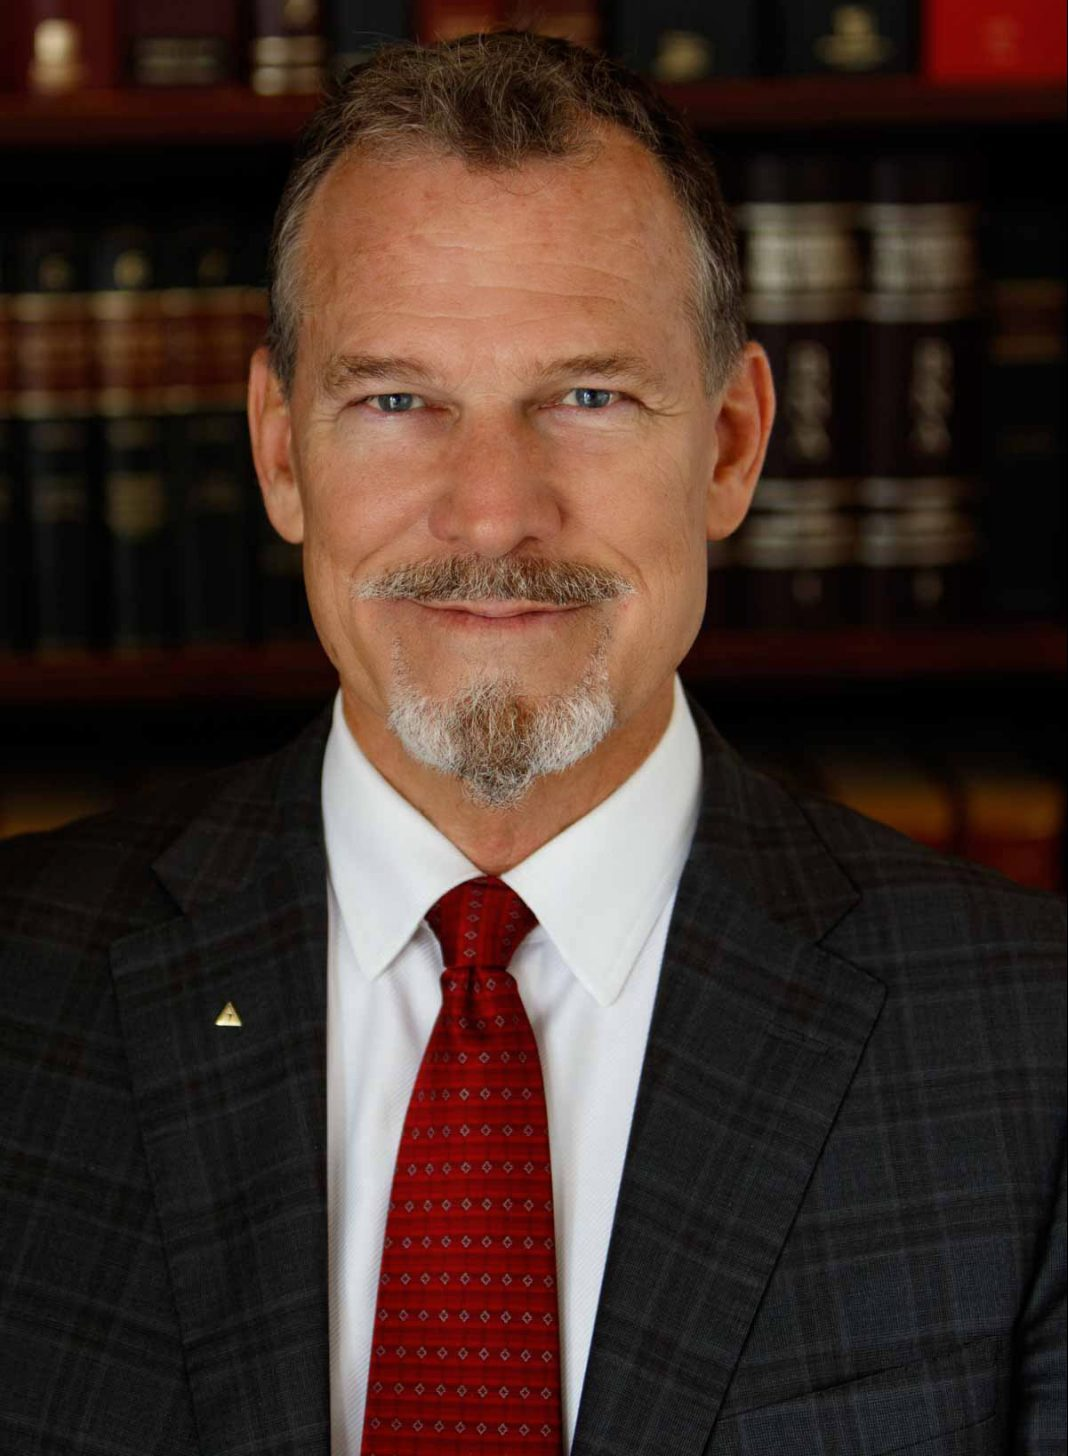 Kevin L. Day - Lawsuit Protection Strategies for Real Estate Owners & Investors (and other tools of the wealthy)